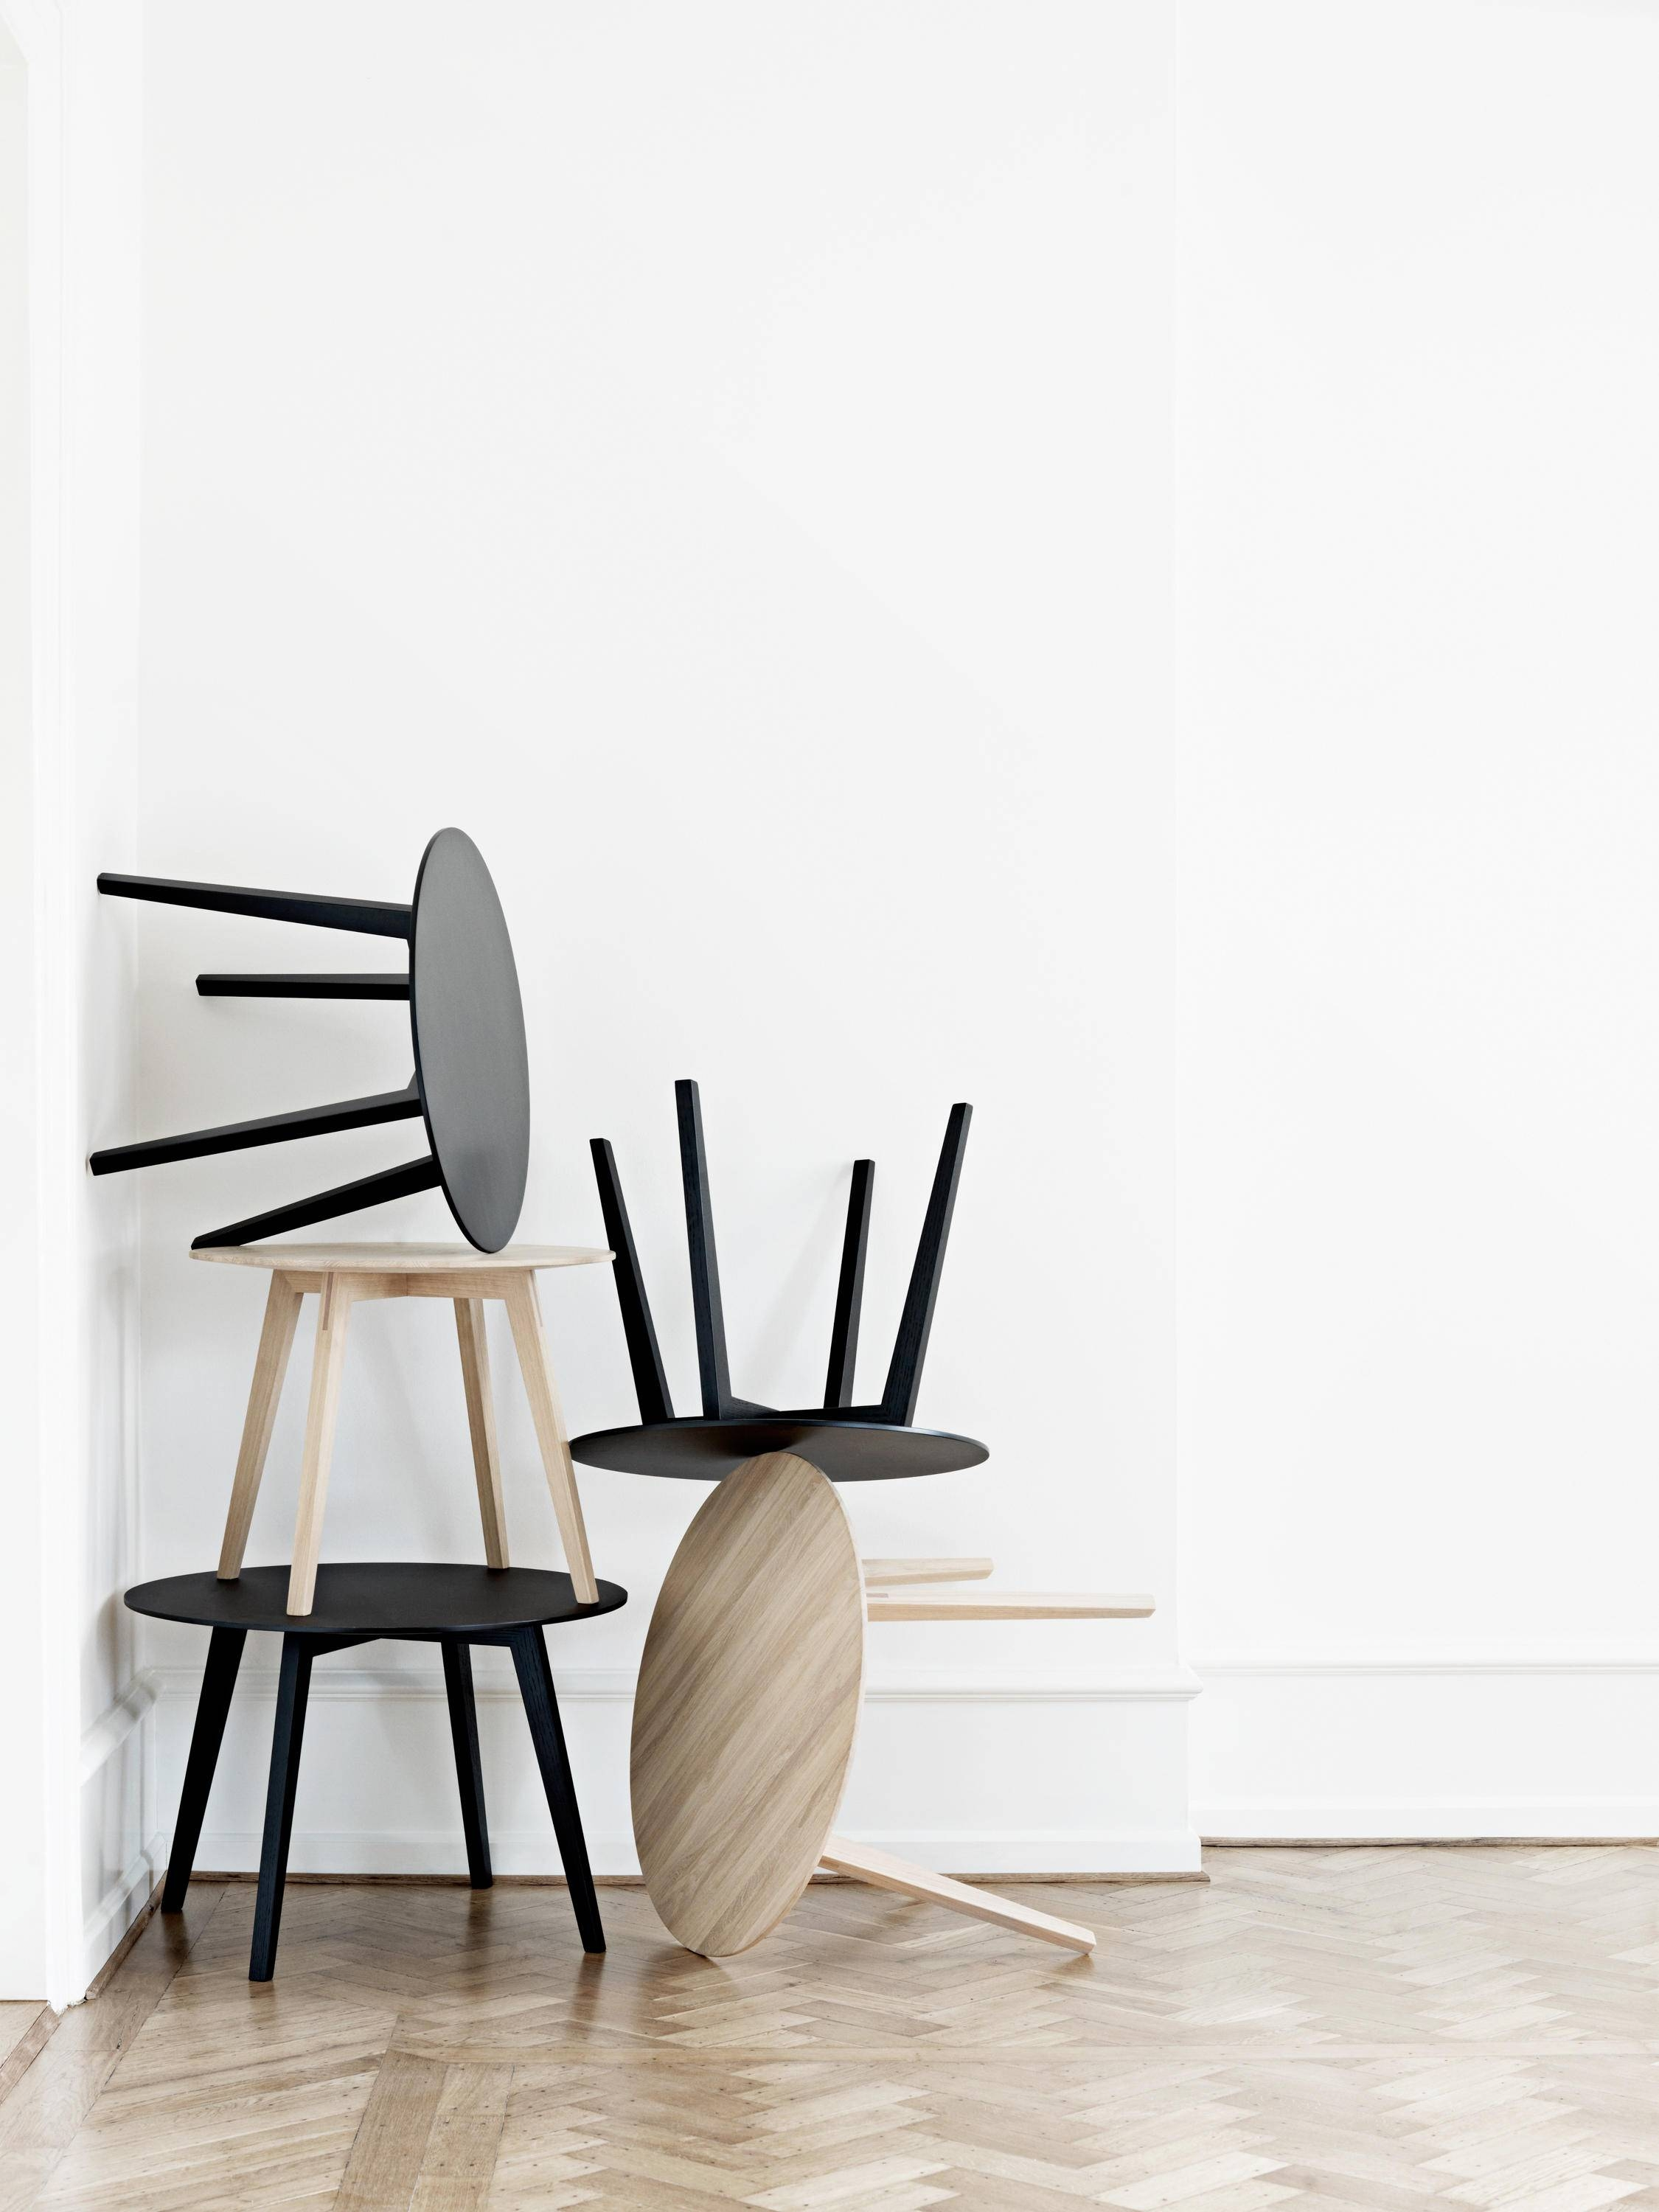 Circle Coffee Table - Side Tables From Getama Danmark | Architonic intended for Circle Coffee Tables (Image 4 of 30)